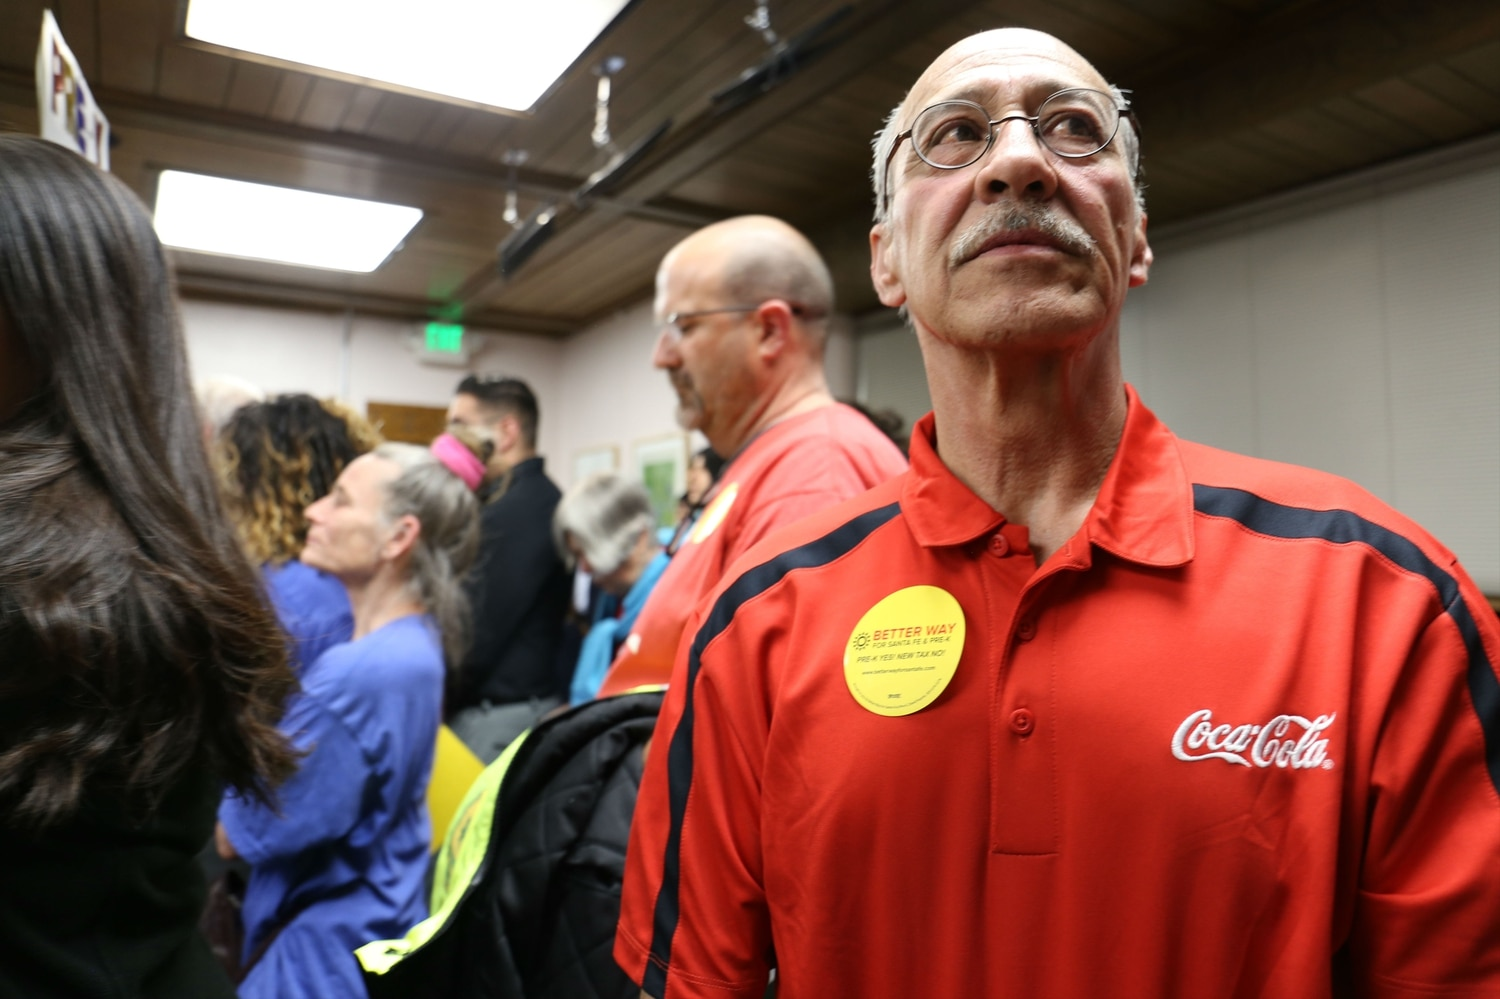 A local Coca-Cola employee waits to speak against the special election.Steven Hsieh